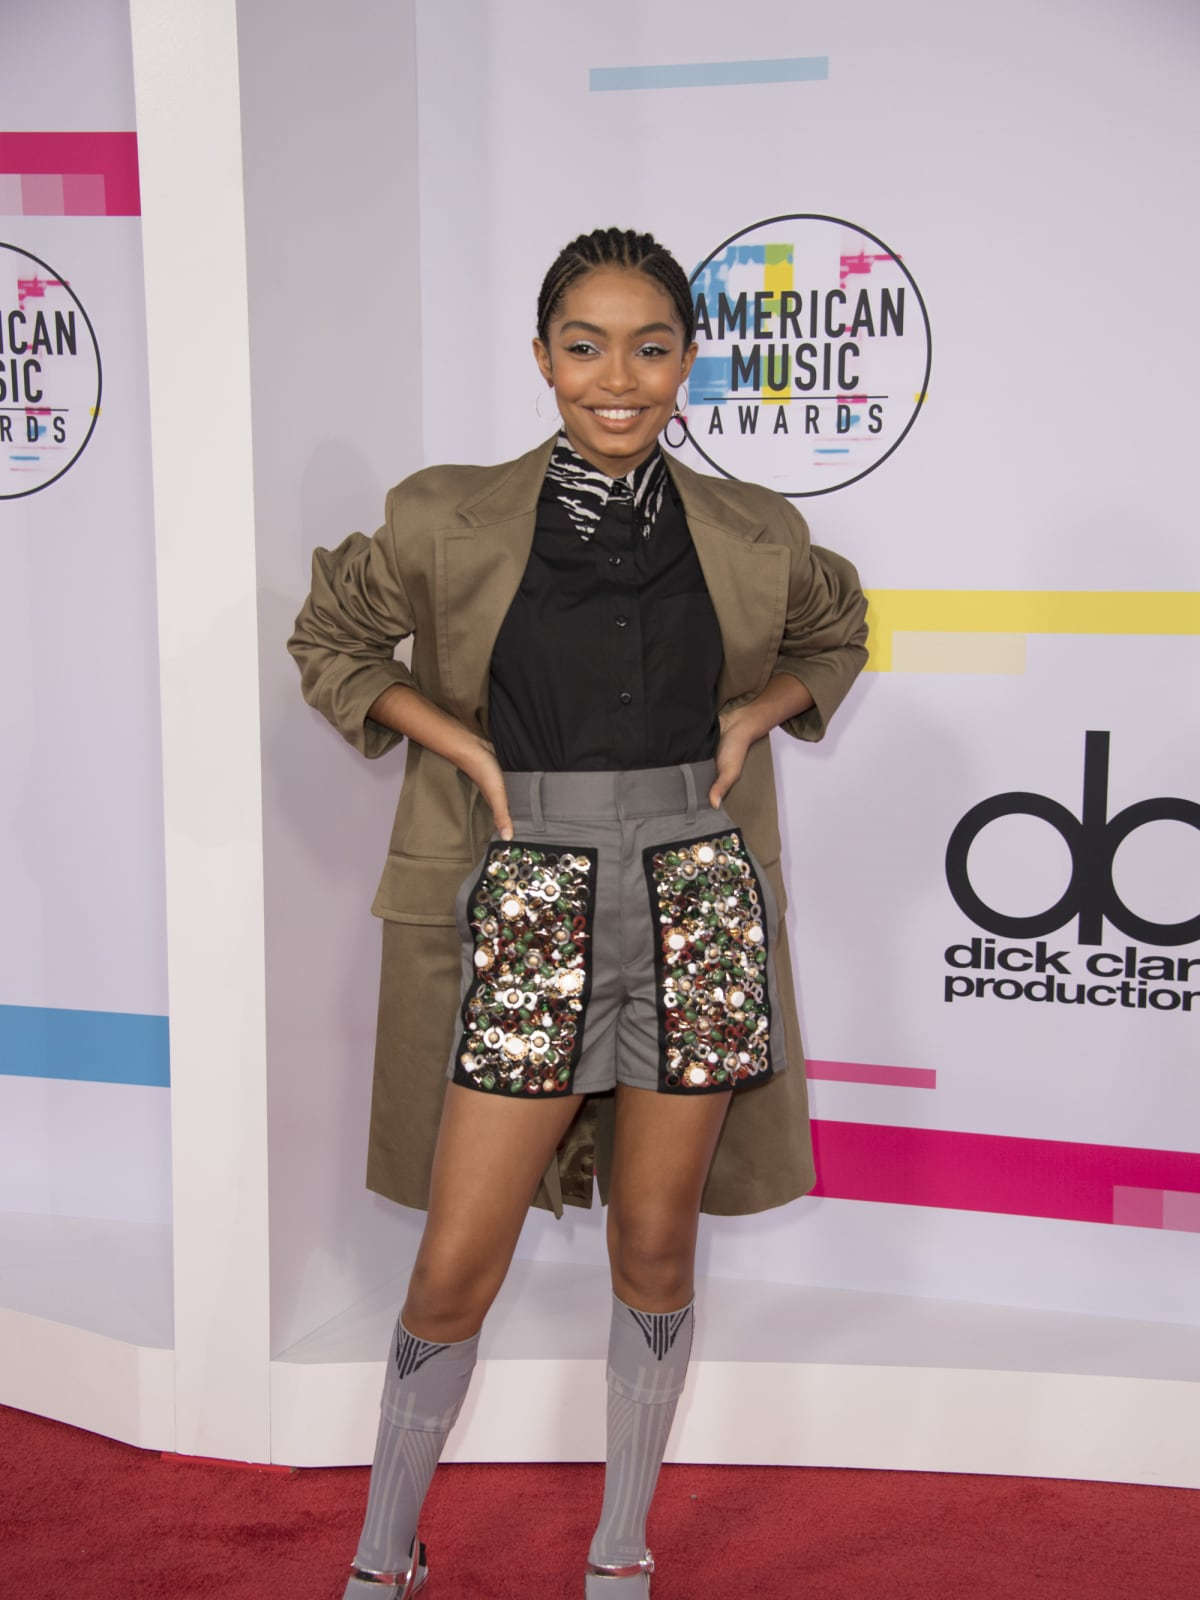 American Music Awards Yara Shahidi